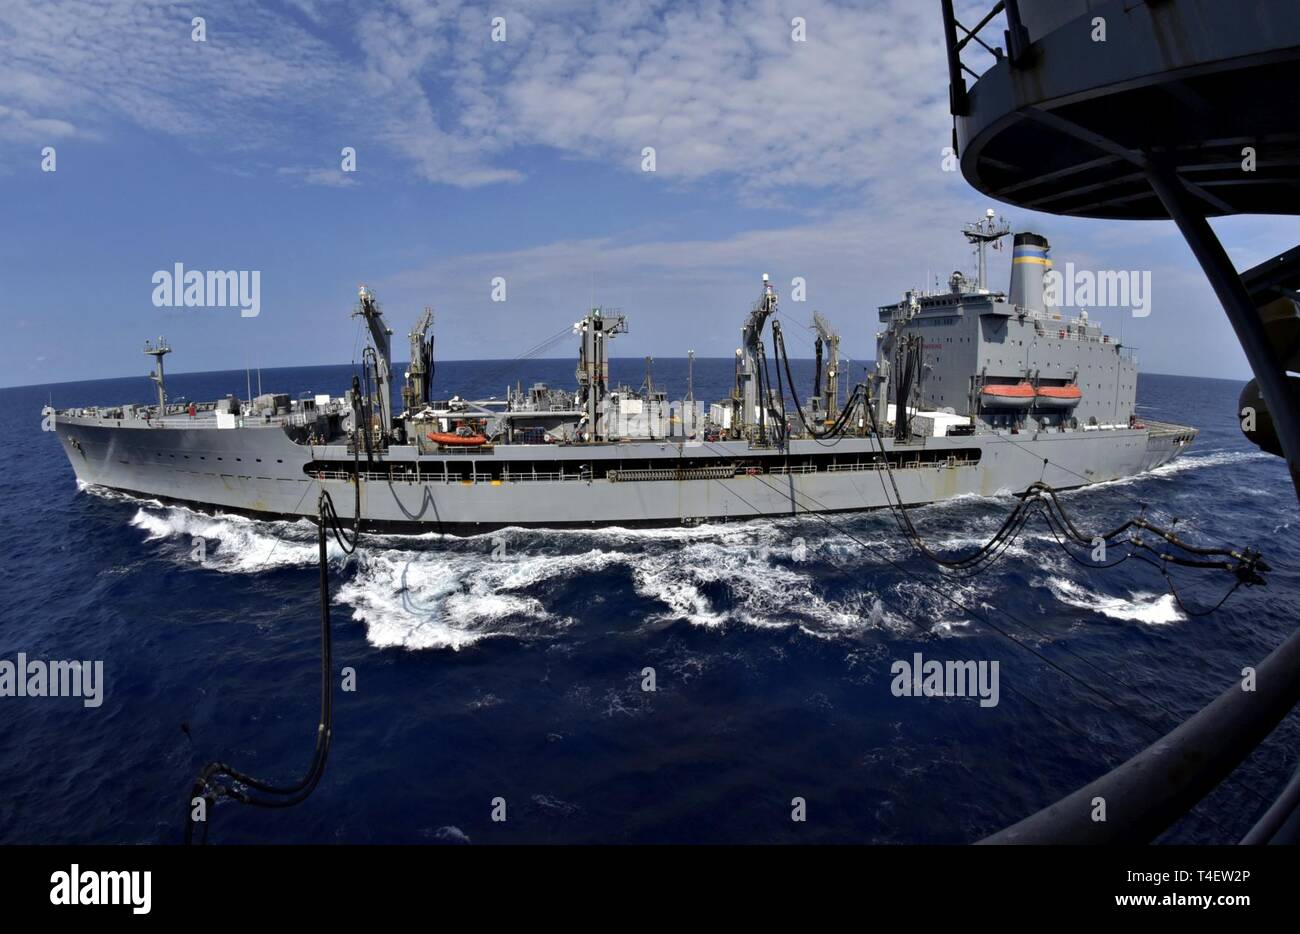 SOUTH CHINA SEA (April 4, 2019) The fleet replenishment oiler USNS Pecos (T-AO 197) and the amphibious assault ship USS Wasp (LHD 1) conduct a replenishment-at-sea during Exercise Balikatan 2019. Exercise Balikatan, in its 35th iteration, is an annual U.S., Philippine military training exercise focused on a variety of missions, including humanitarian assistance and disaster relief, counter-terrorism, and other combined military operations. - Stock Image